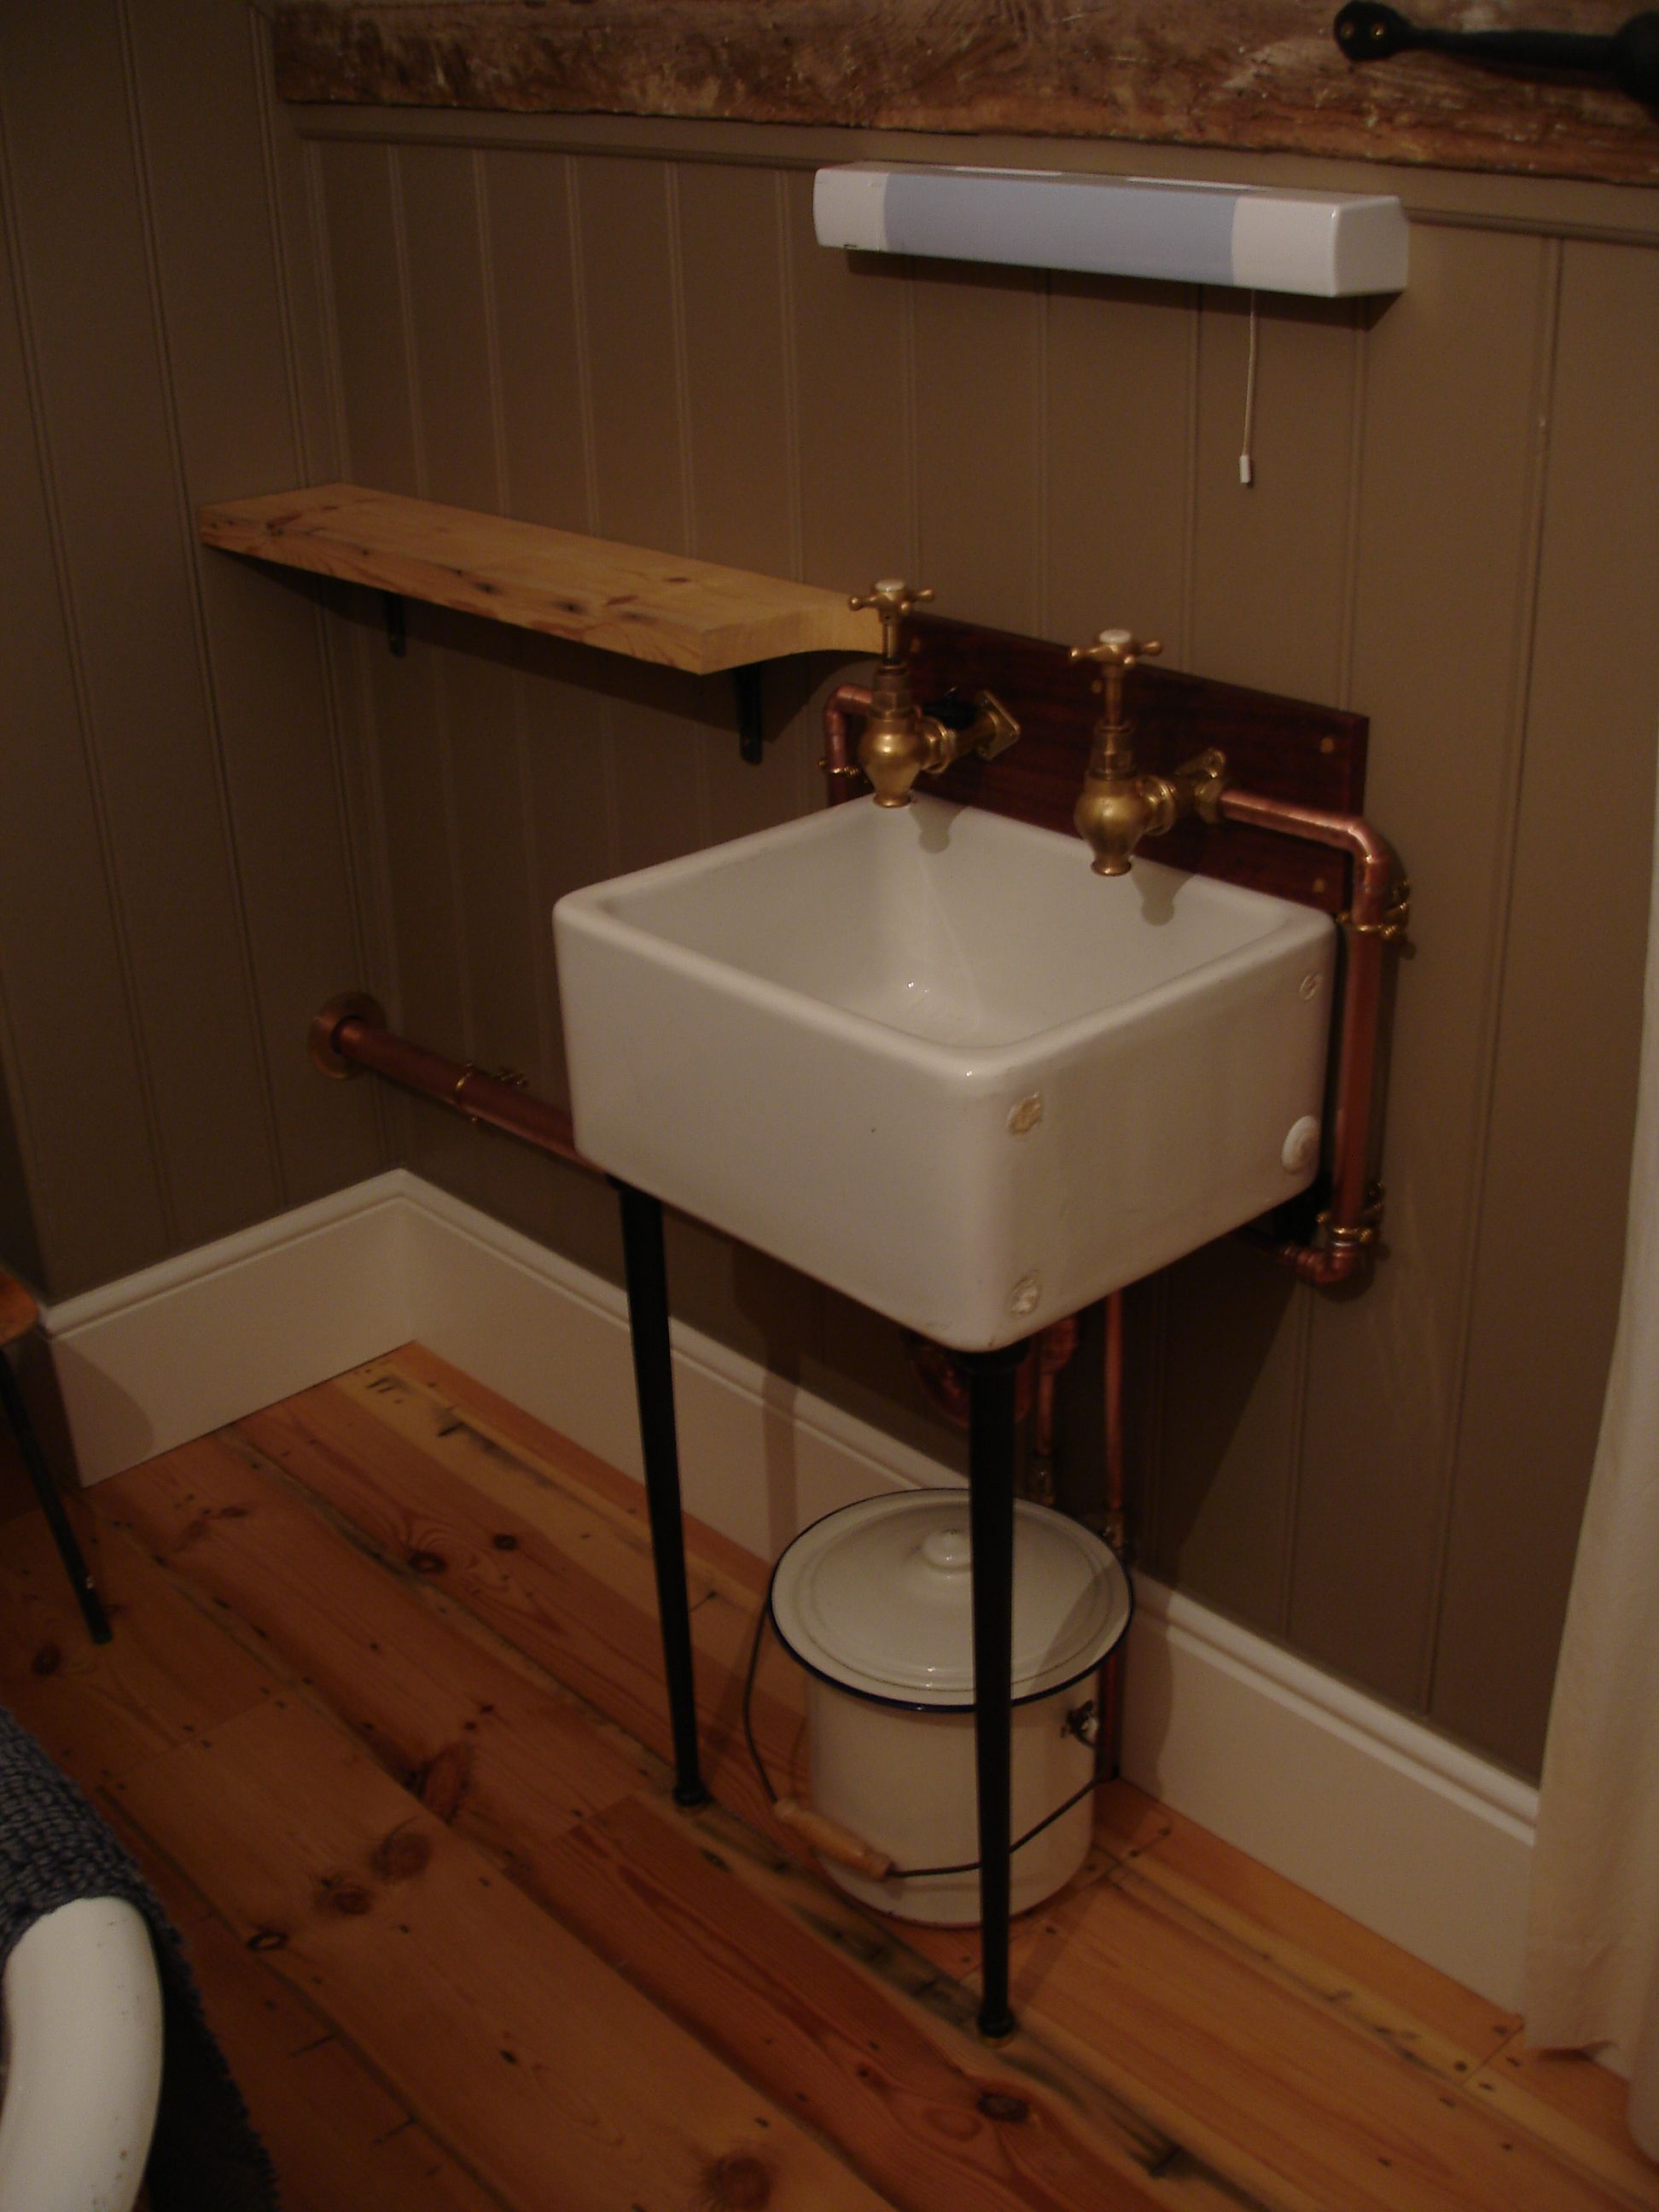 tub sinks flat tubs sink front kitchen picture farmhouse copper rounded ends online of and